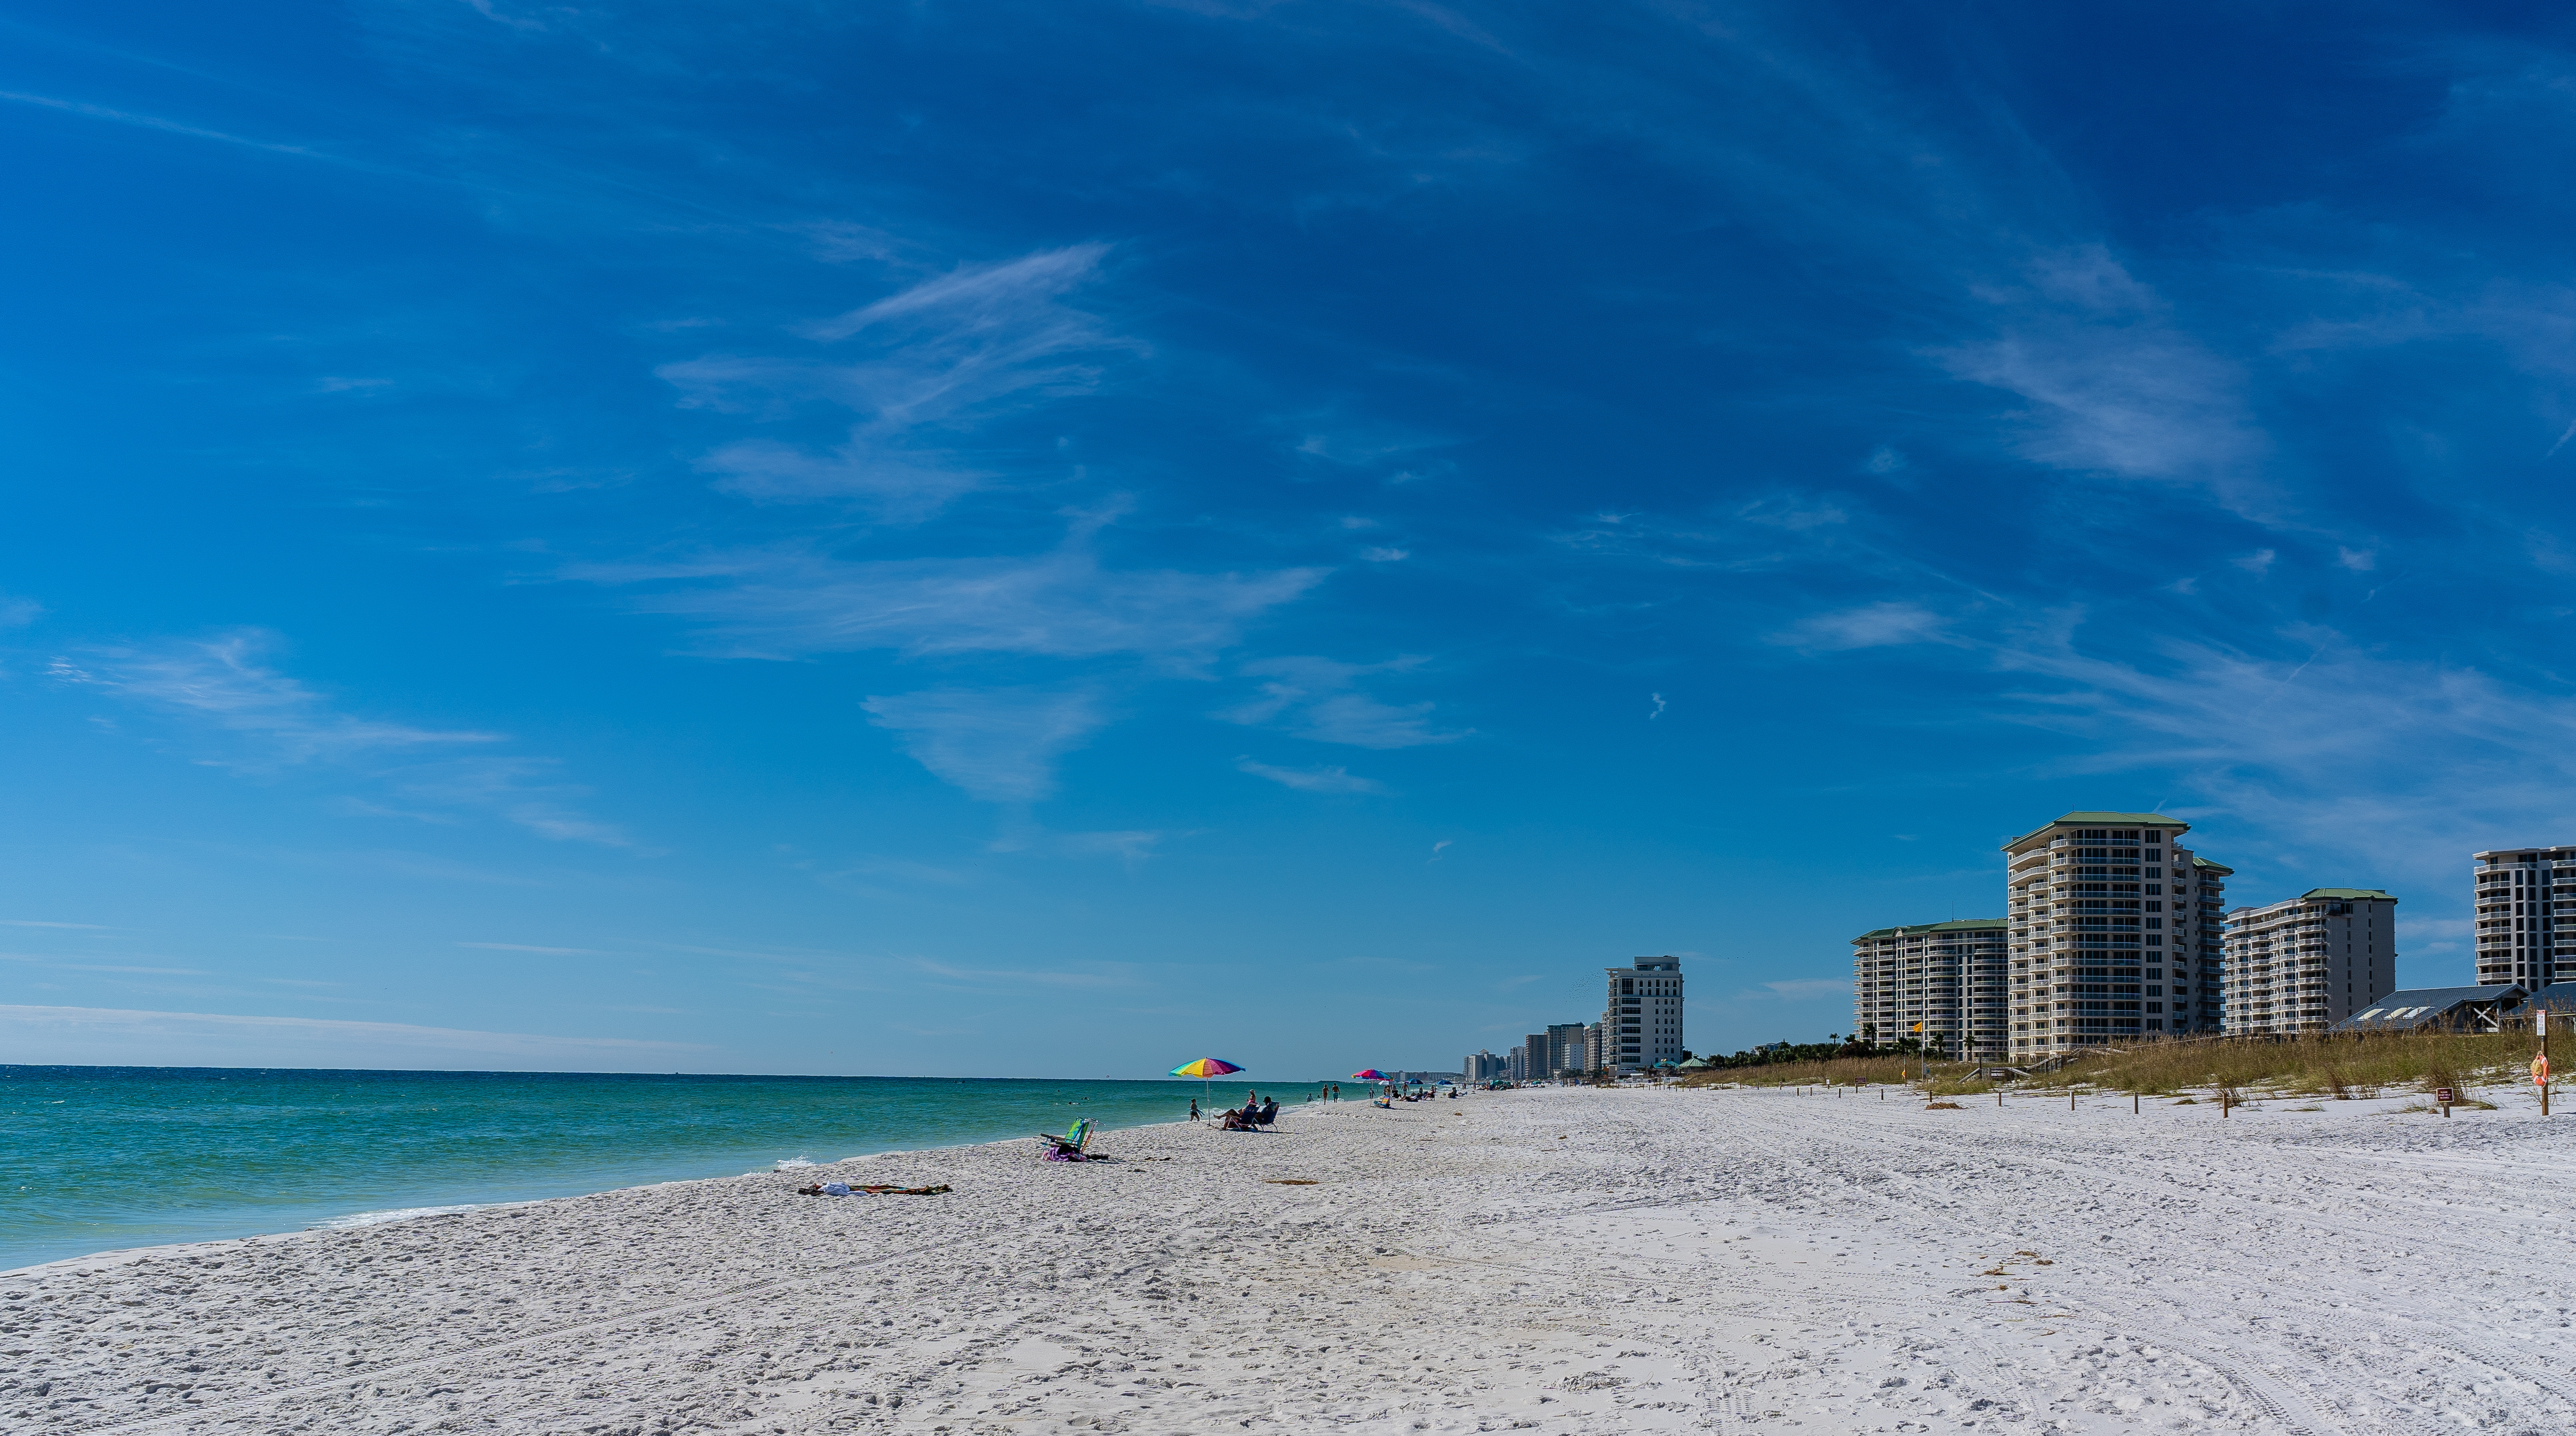 Destin Florida - Attractions & Things To Do In Destin Fl - Map Of Destin Florida Attractions